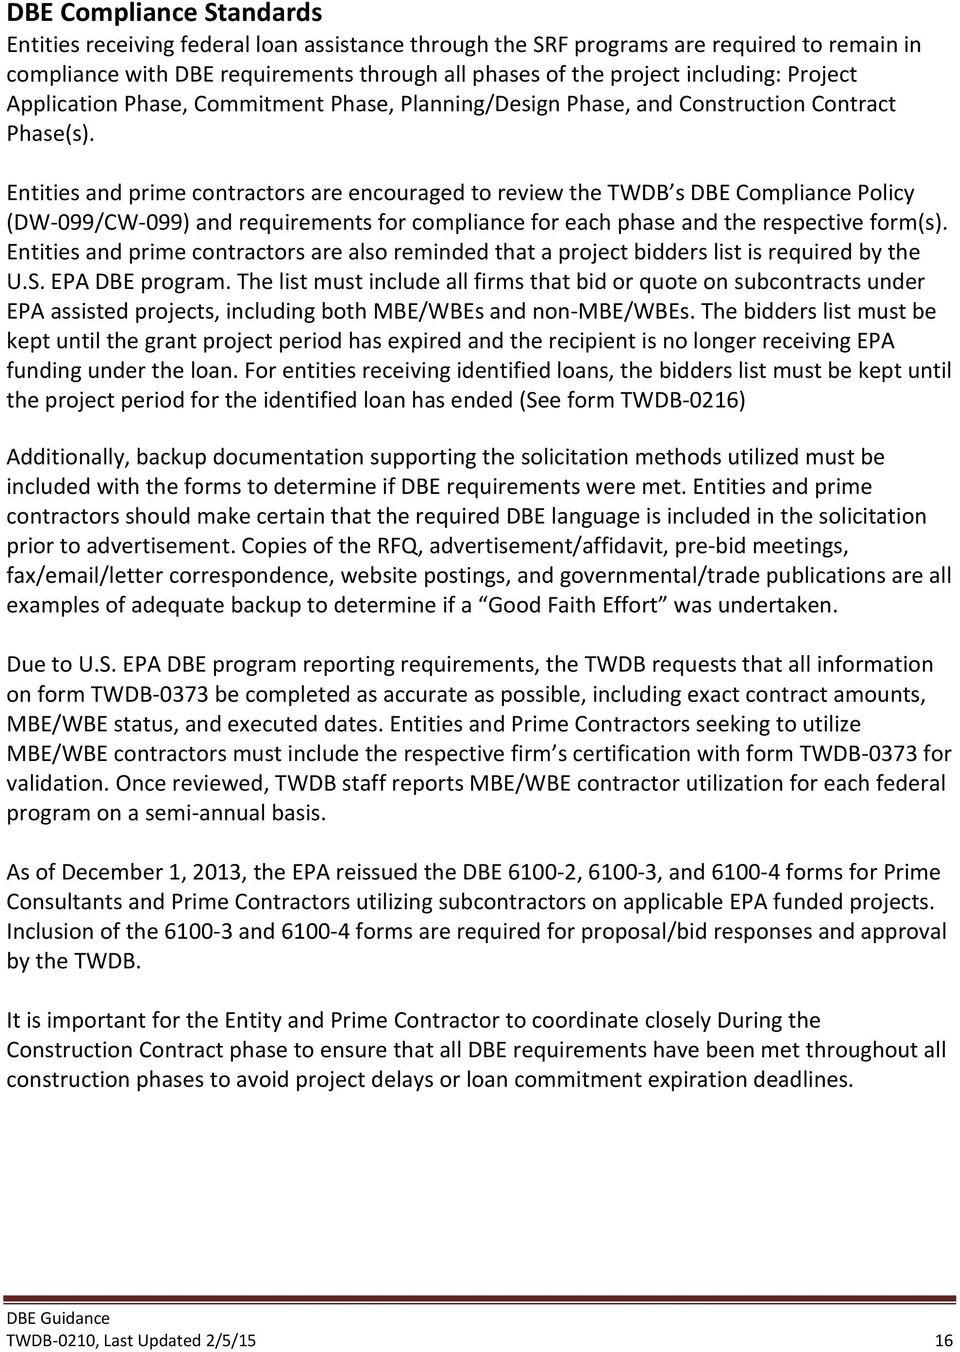 Entities and prime contractors are encouraged to review the TWDB s DBE Compliance Policy (DW 099/CW 099) and requirements for compliance for each phase and the respective form(s).